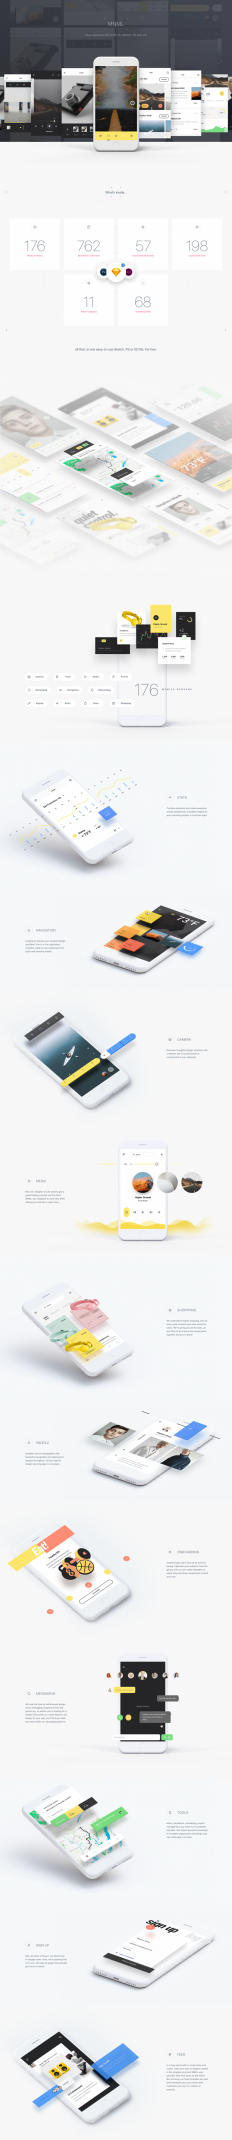 MNML – Free Multi-purpose iOS UI Kit for Sketch, PS & XD on Inspirationde